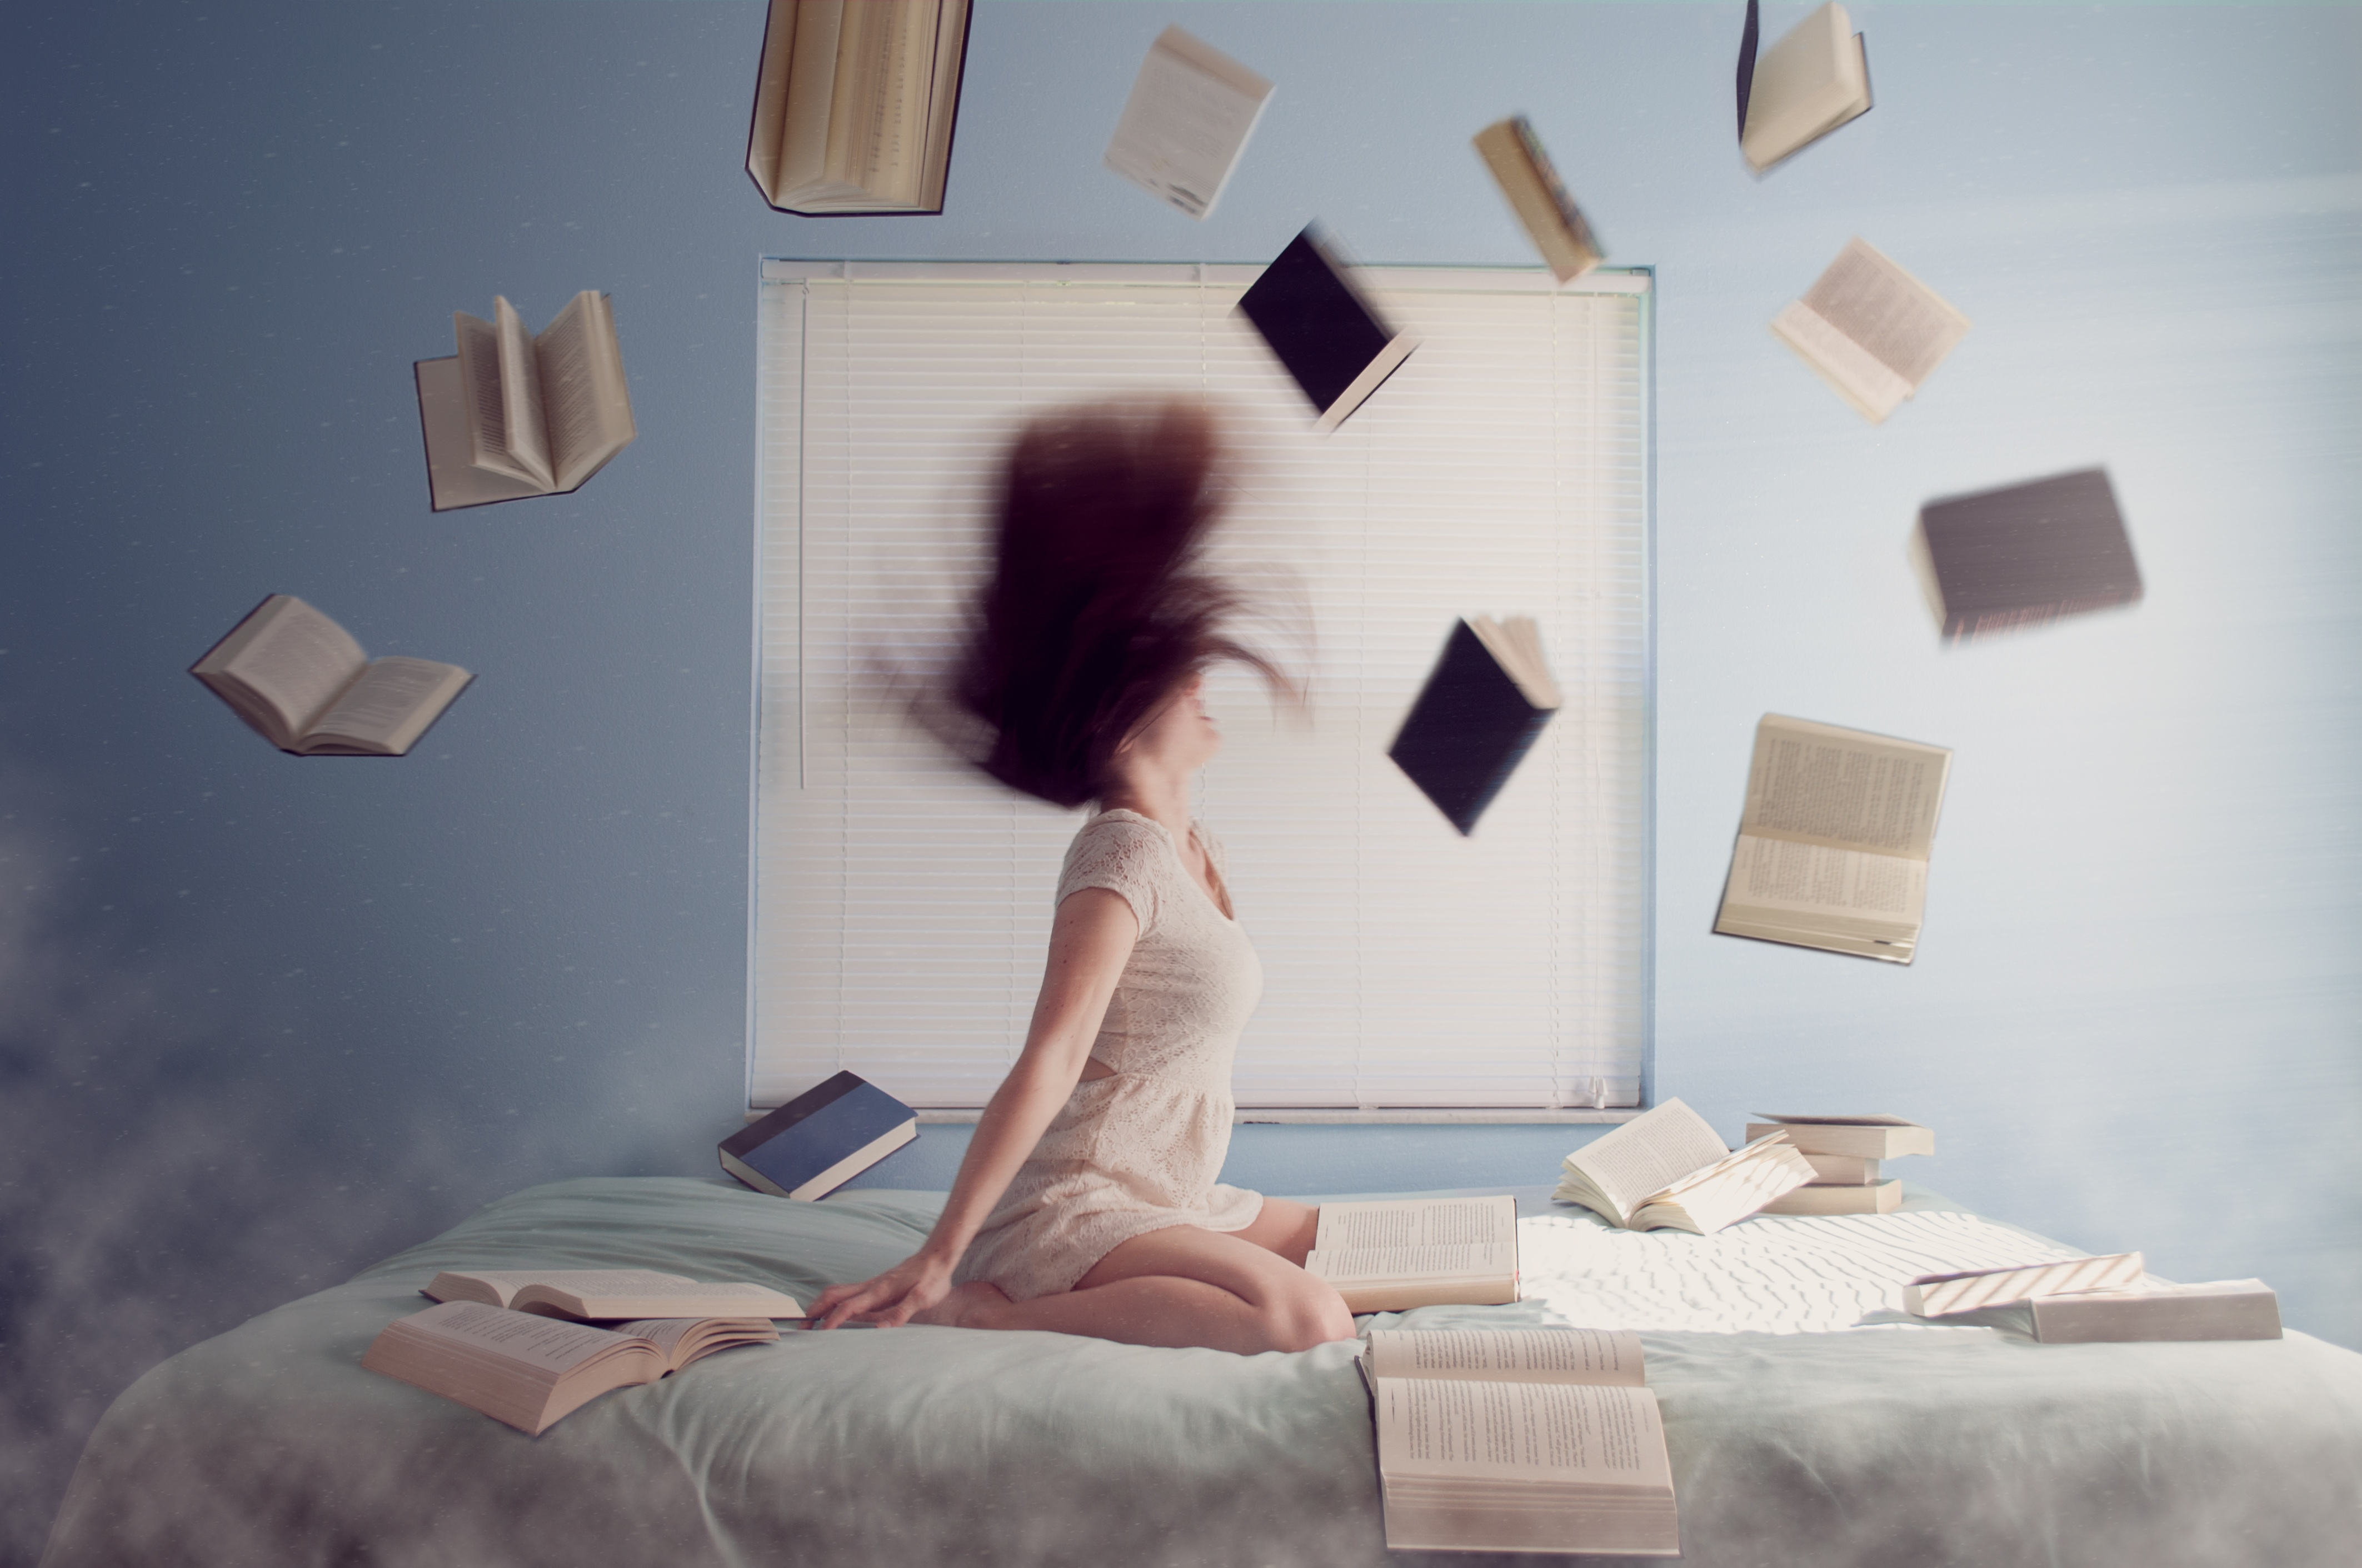 Blogs & books for the brain...